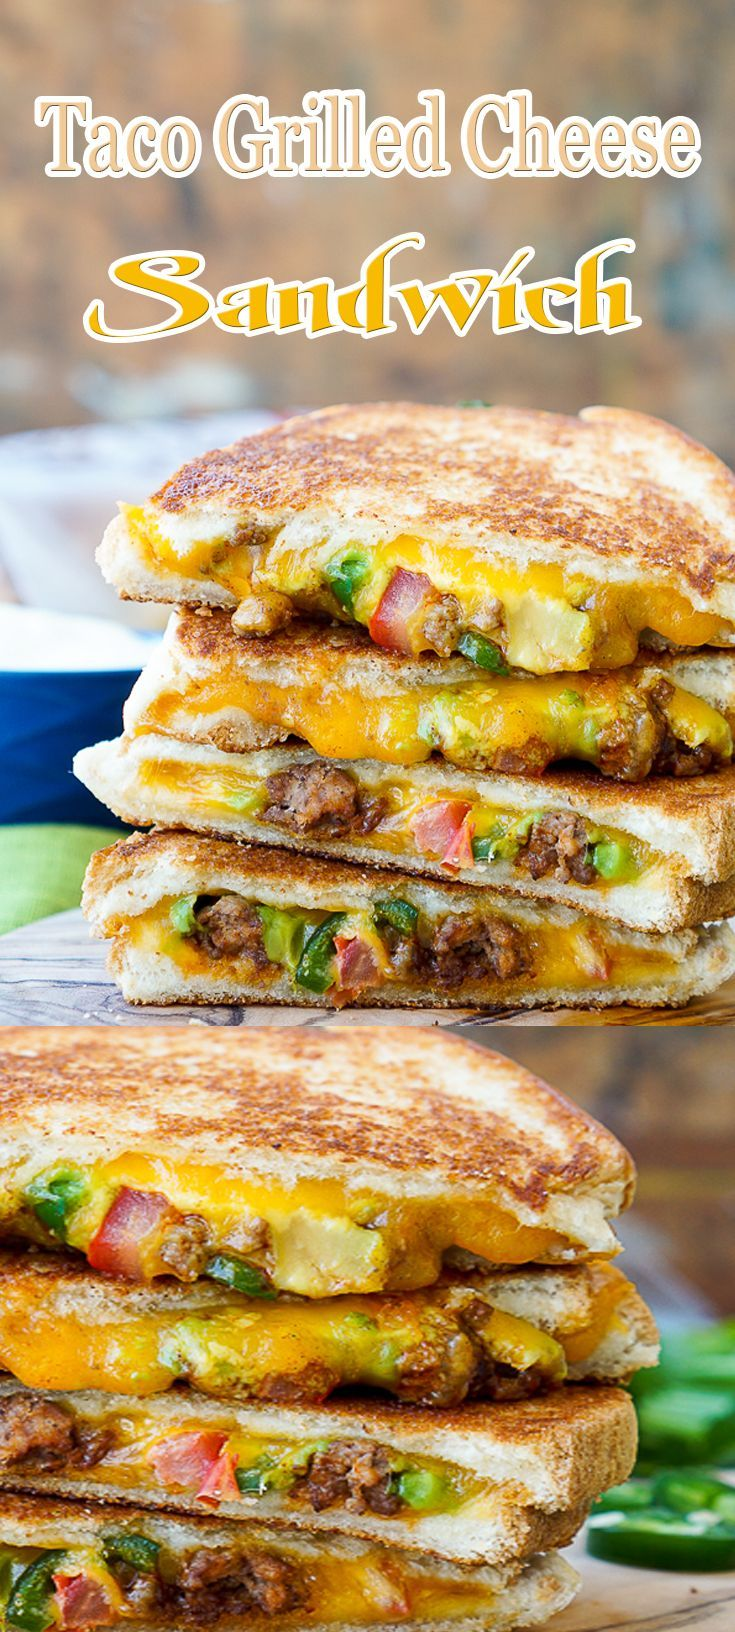 Taco Grilled Cheese… delicious as is but eve better dipped in one of SBRs many dipping sauces.